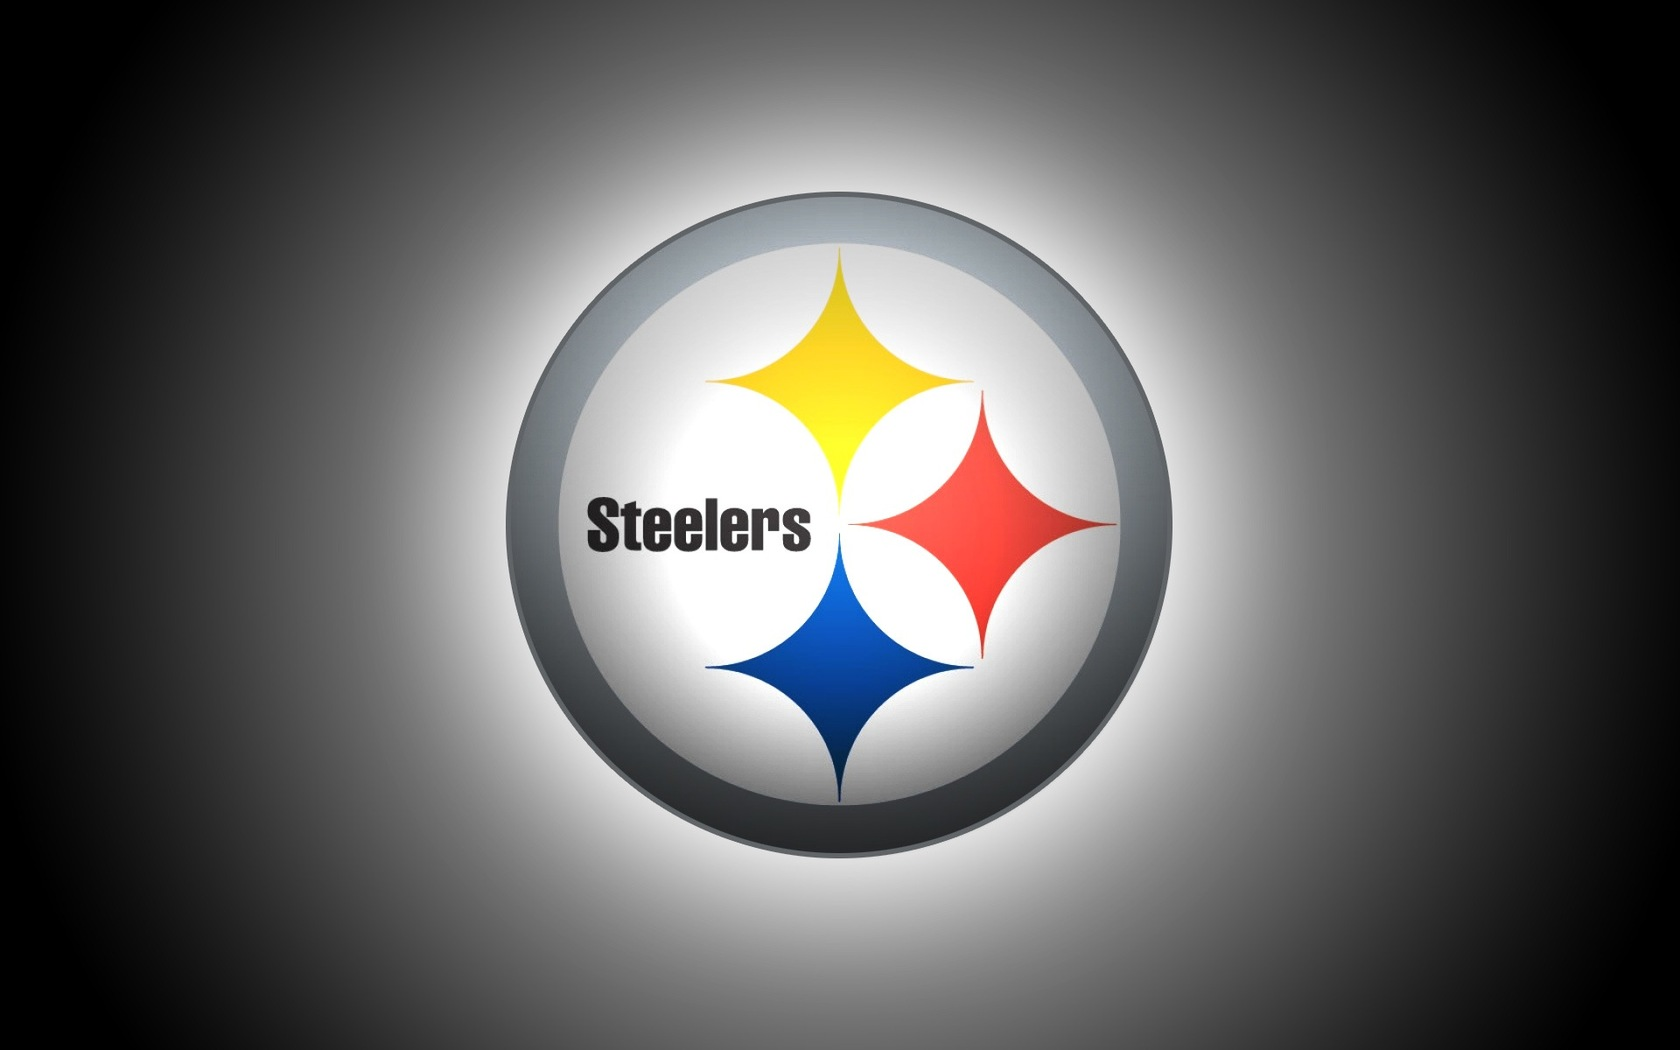 Pittsburgh Steelers logo wallpaper 18509 1680x1050